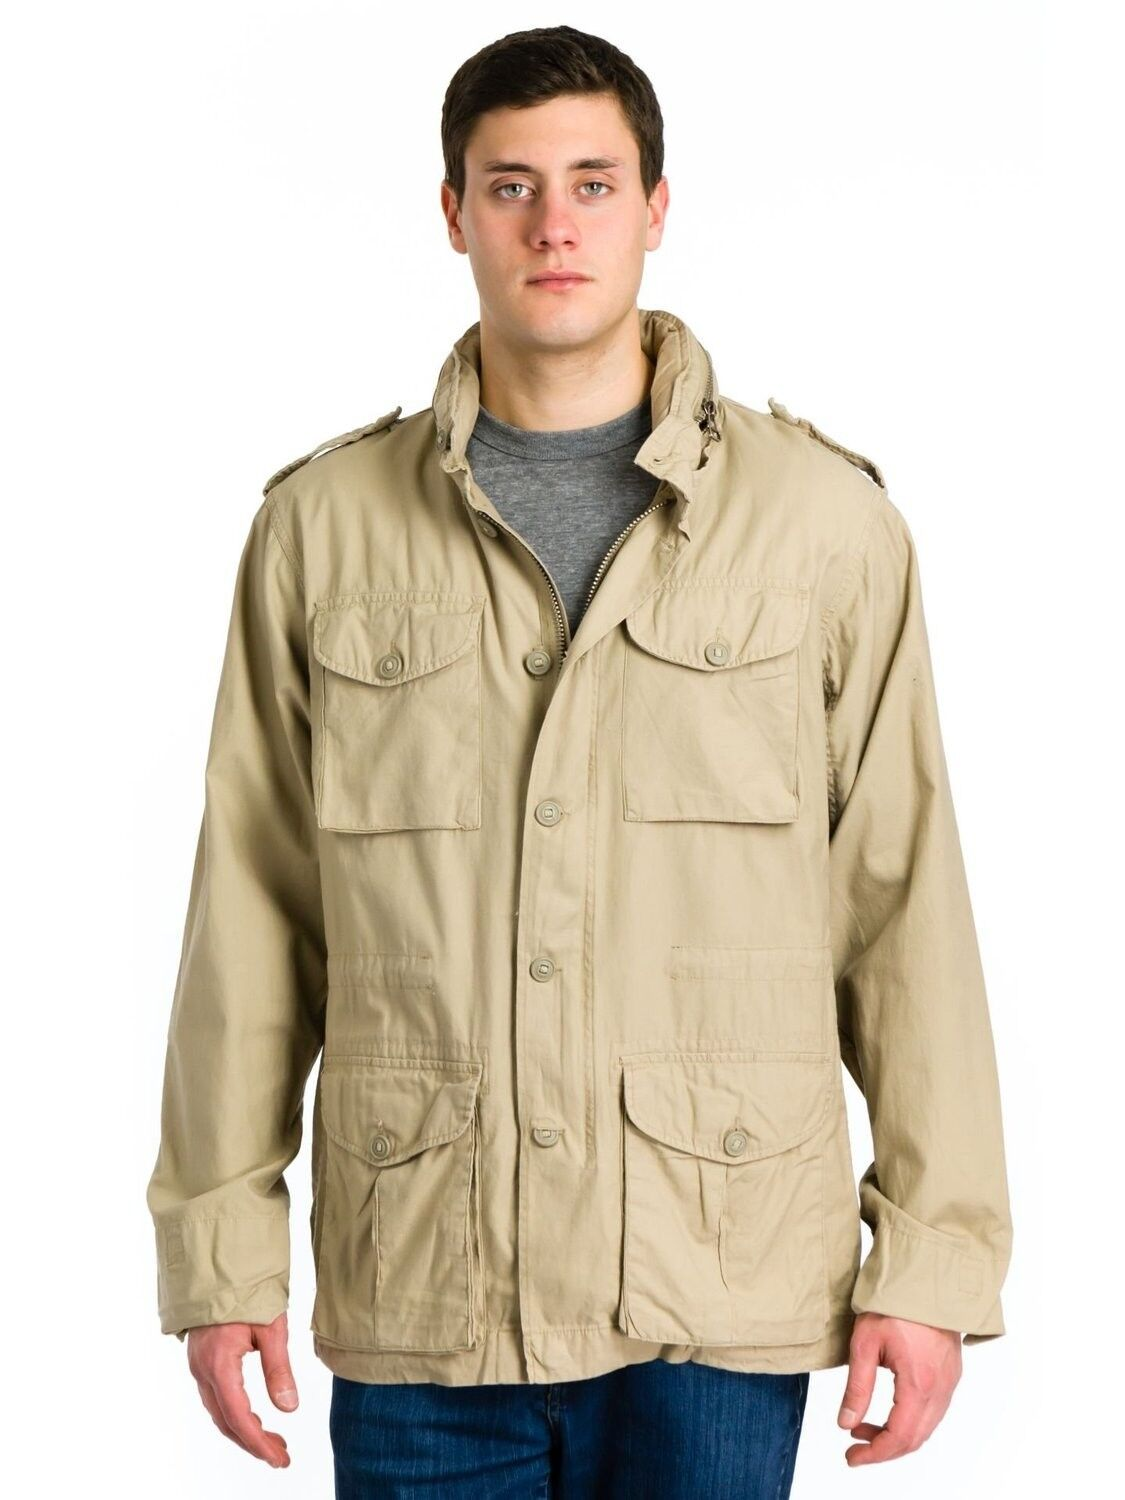 Khaki jacket is a perfect staple that can make you warm and also very stylish. You have maybe noticed that It-girls wear their khaki jackets with almost everything.